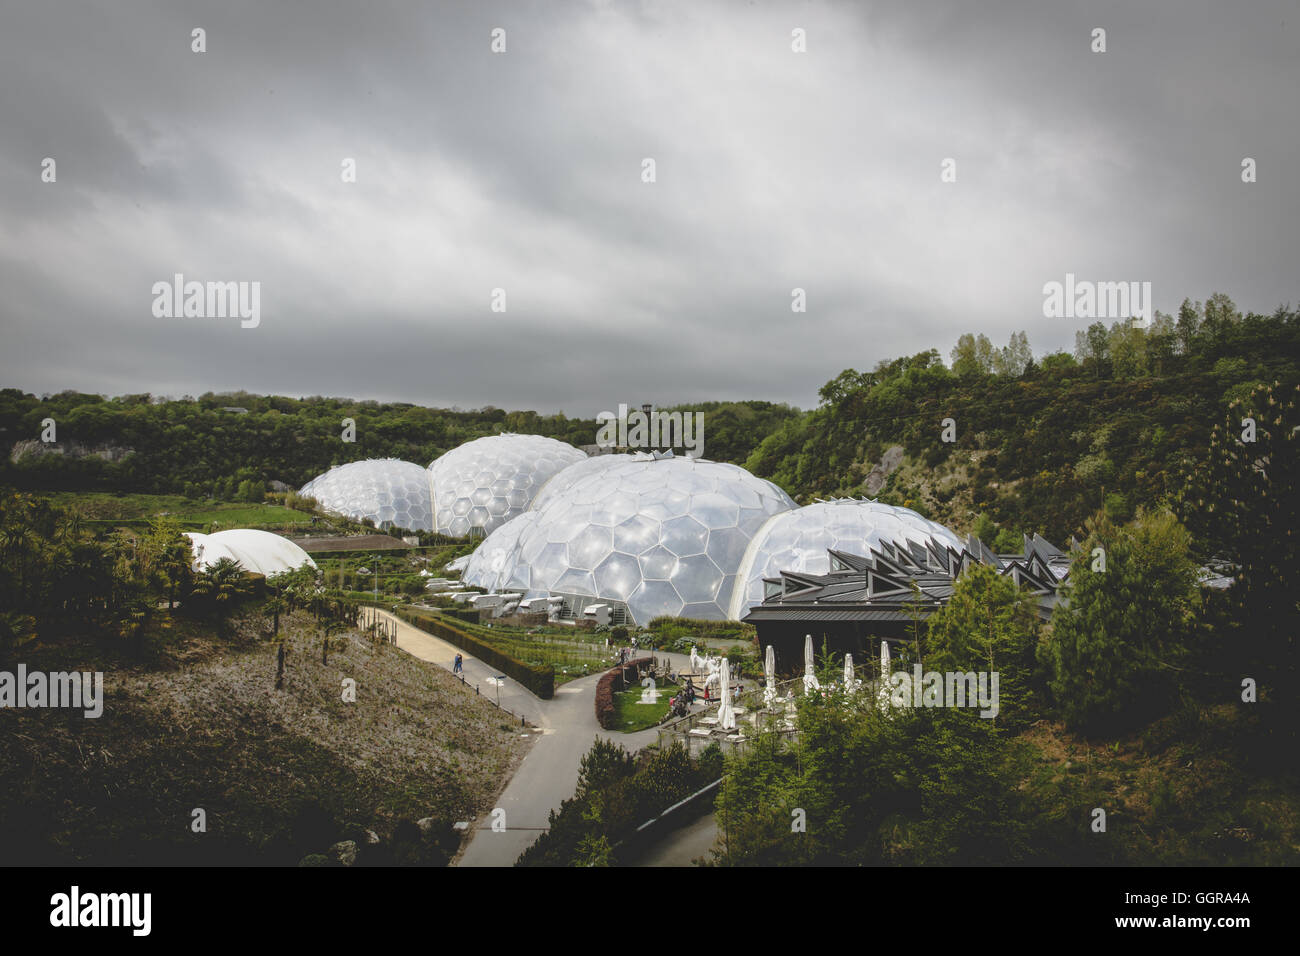 Eden Project in St Austell, Par, Cornwall, England. - Stock Image